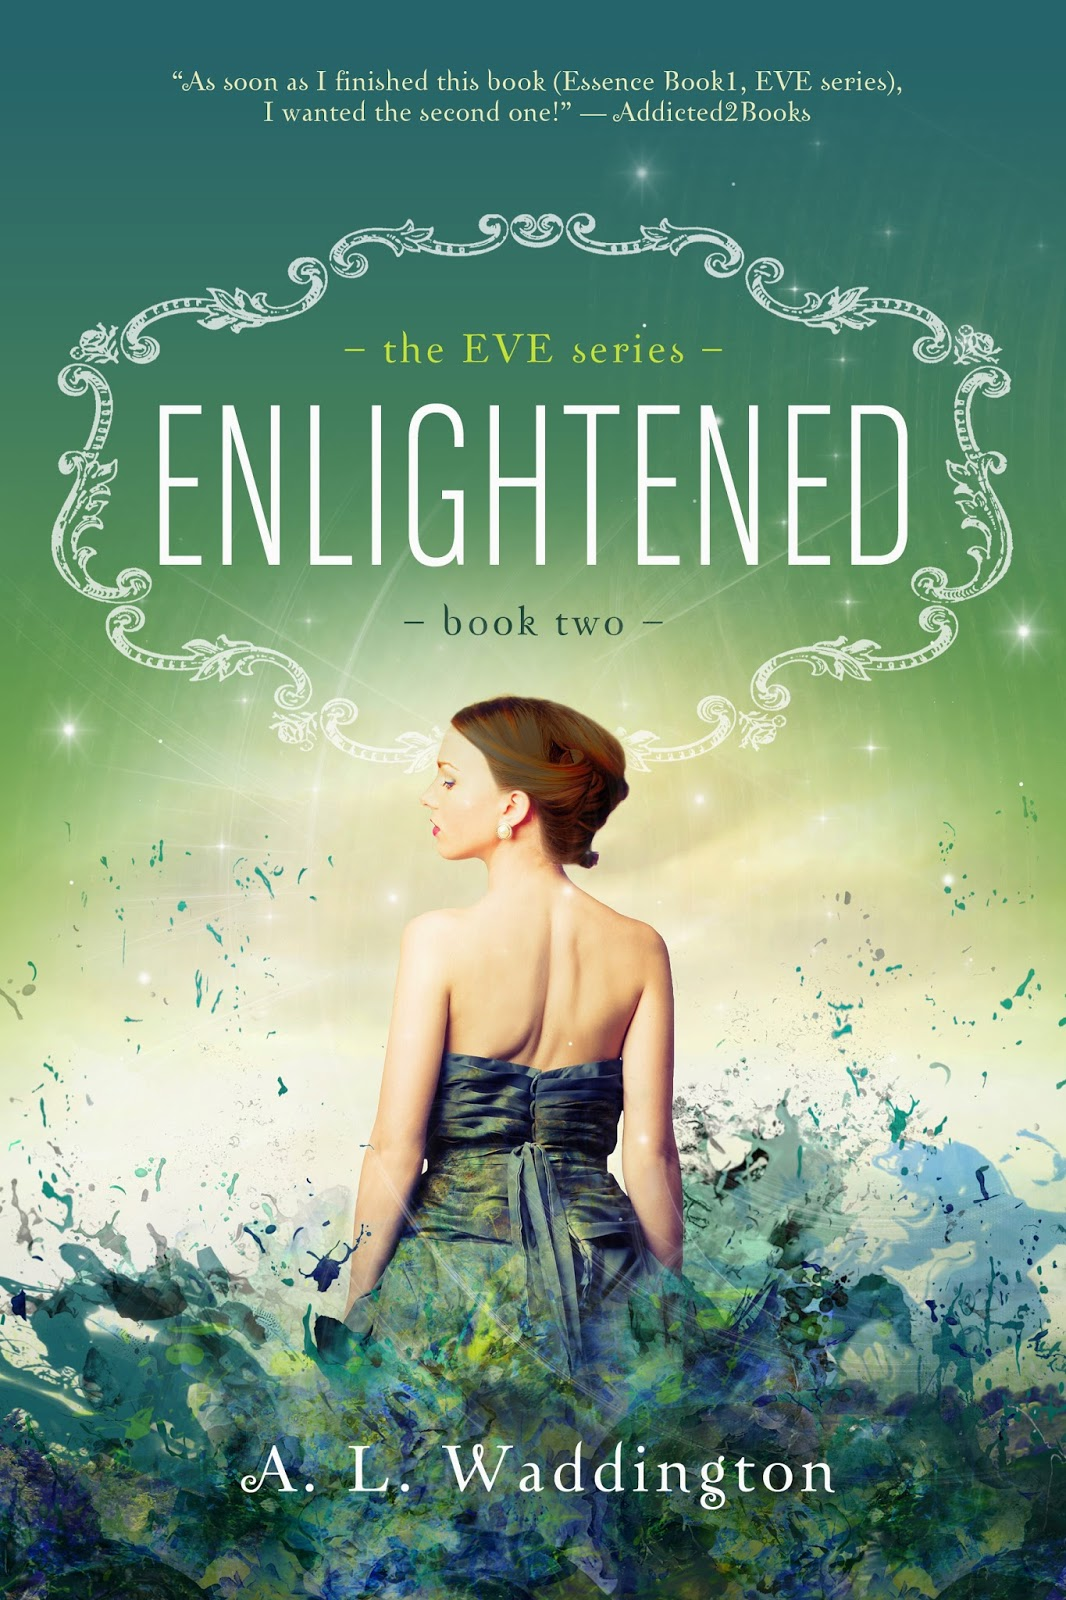 #BookReview: Enlightened by @A_L_Weddintong